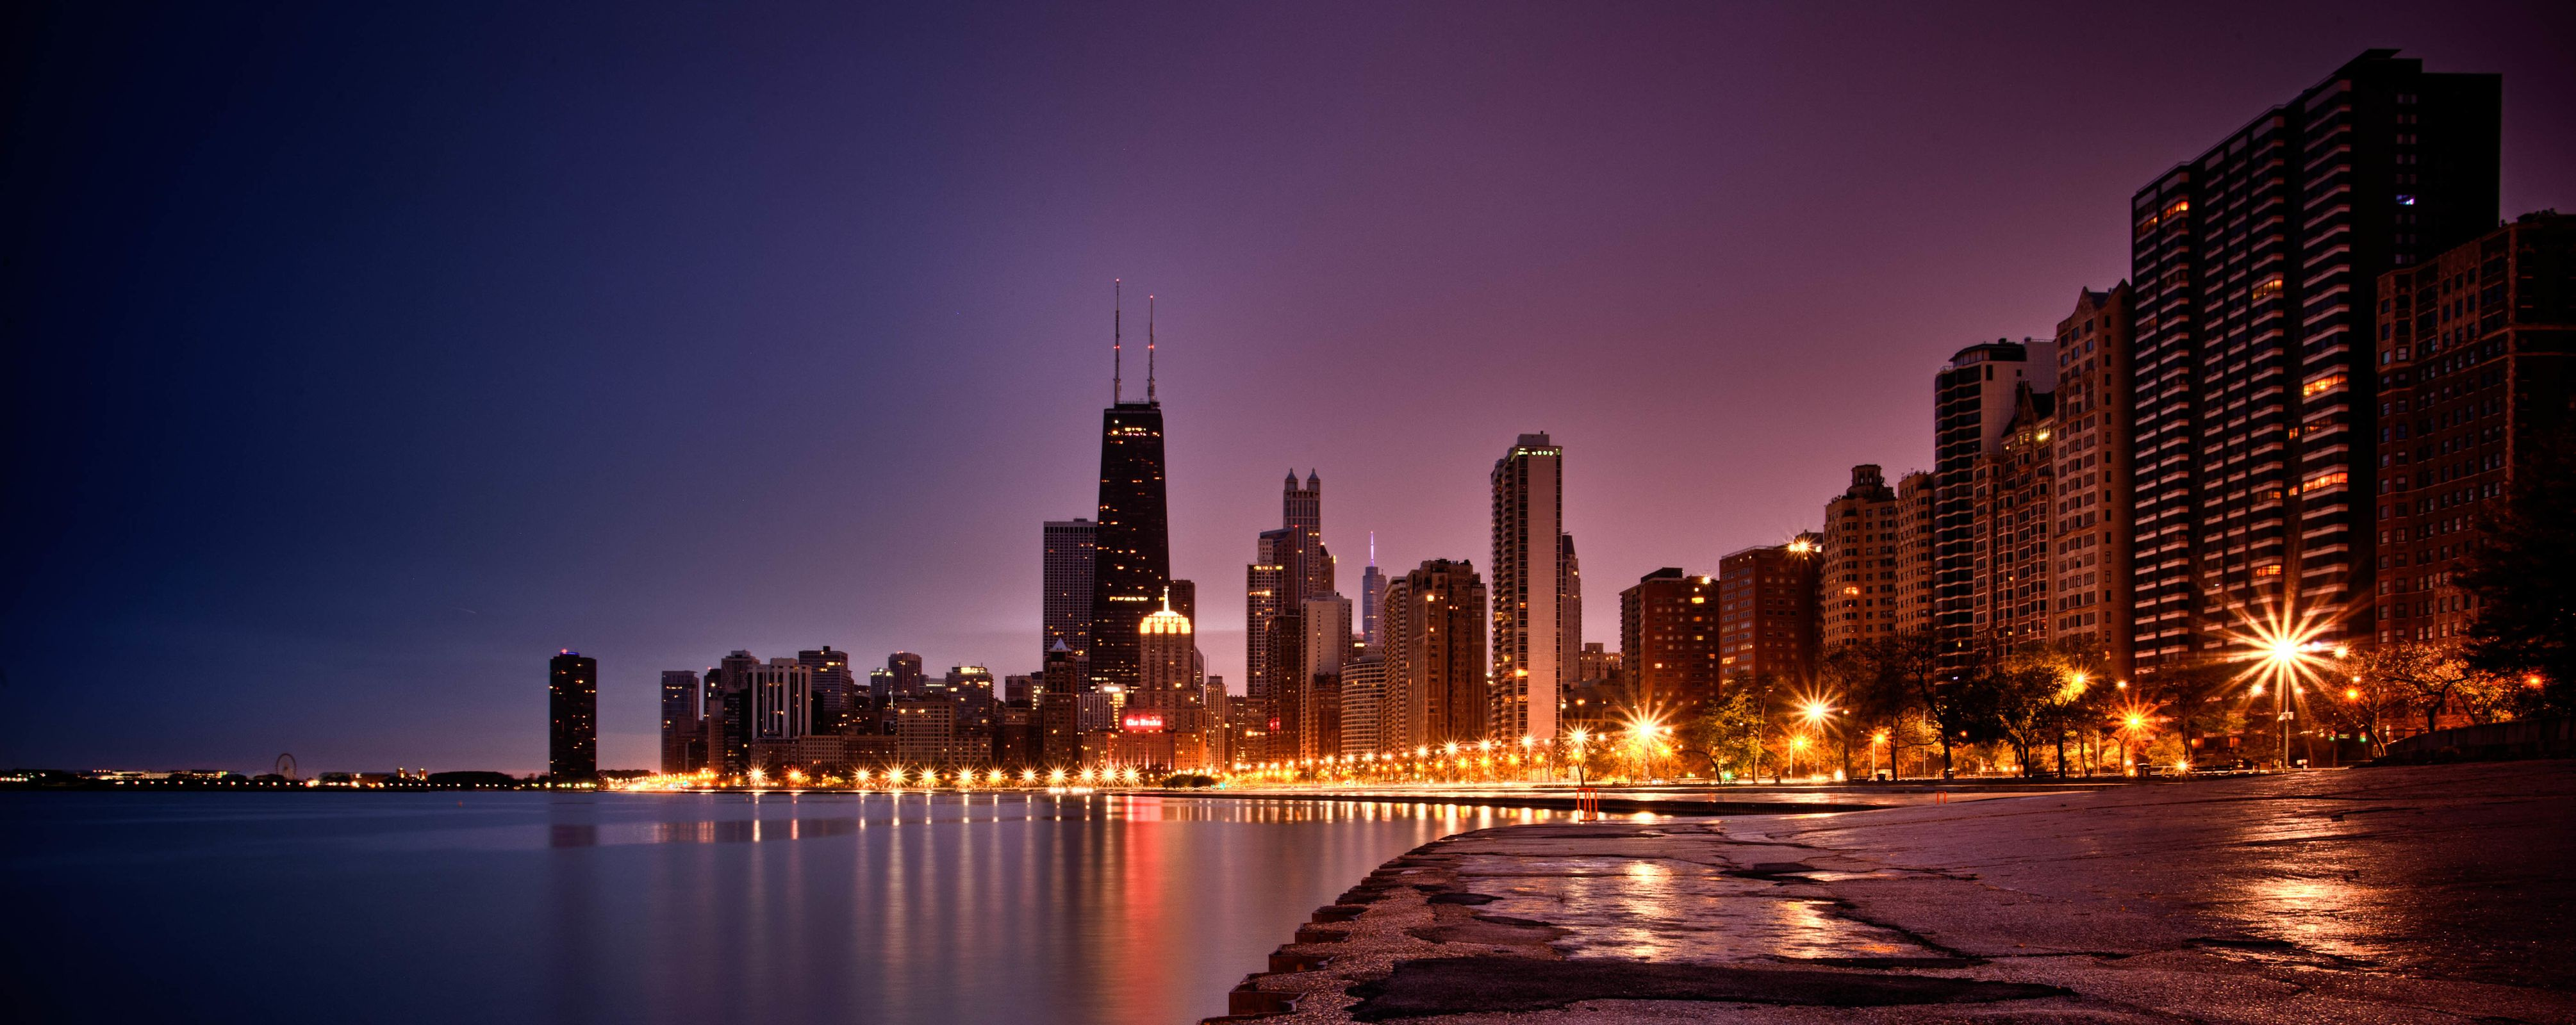 Chicago HD Wallpapers Backgrounds Wallpaper